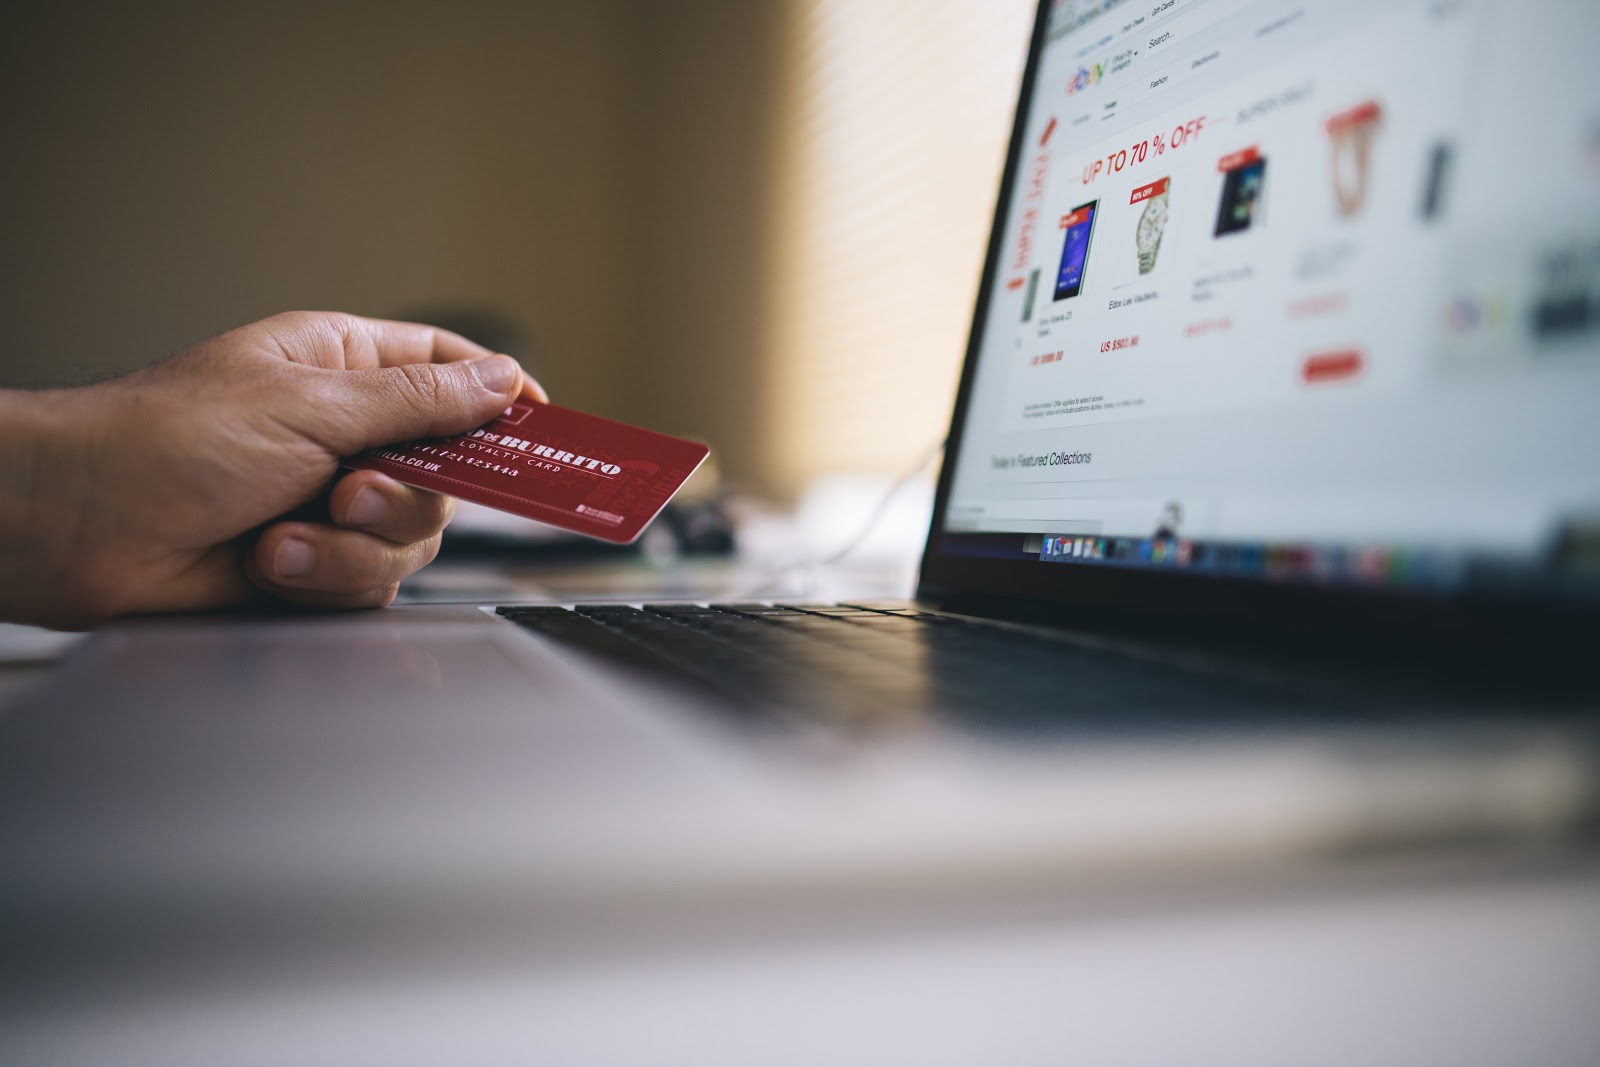 Online shopping is growing like never before